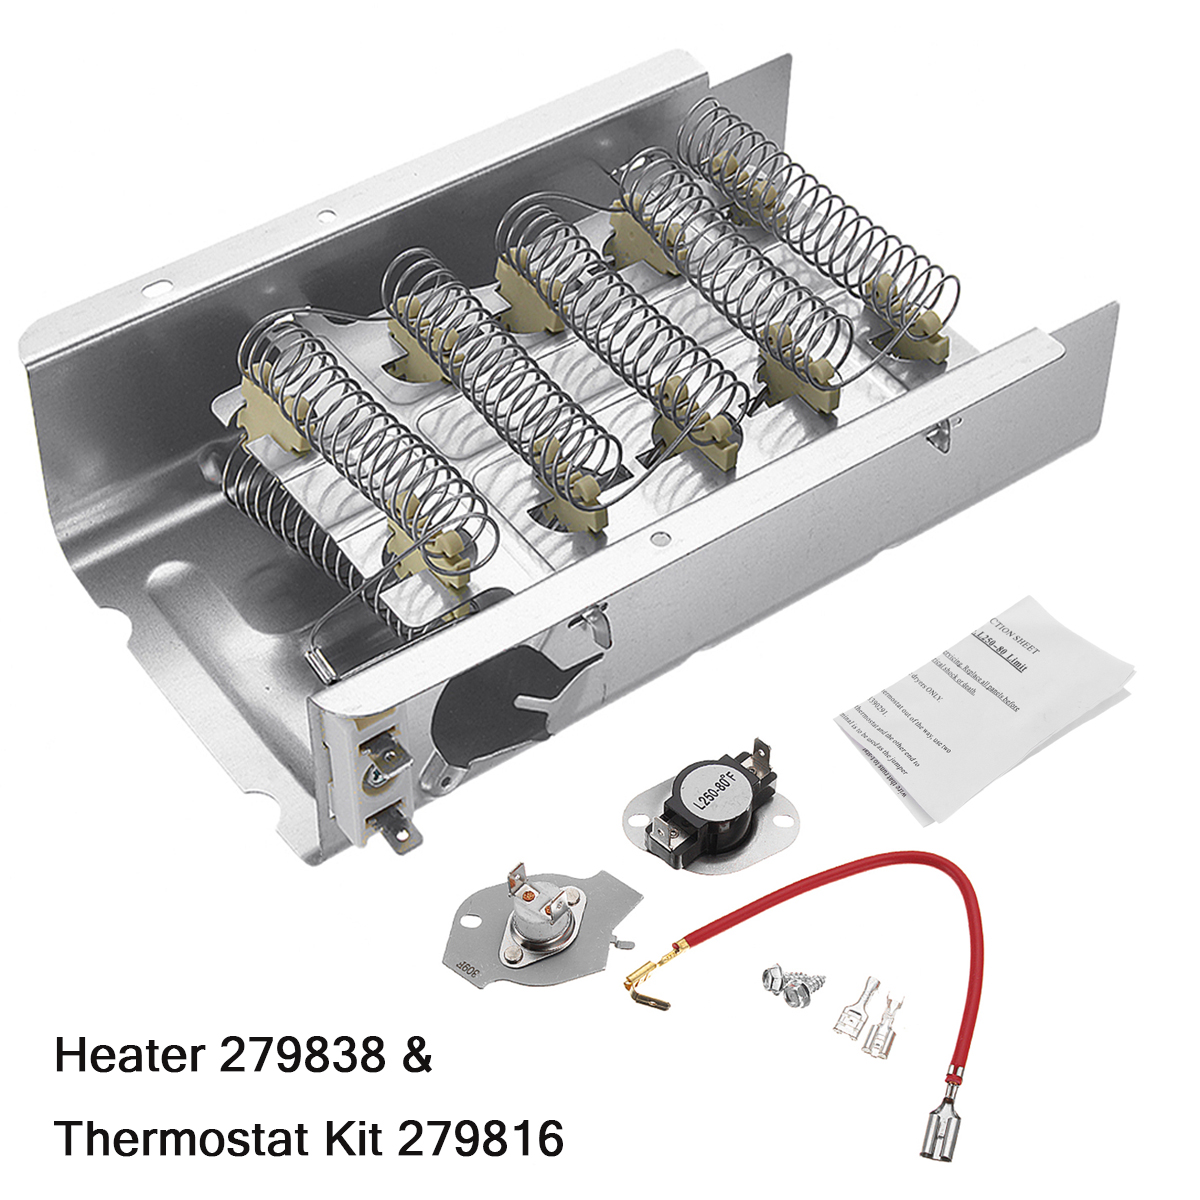 240V 5400W Dryer Heating Element & Thermostat Kit 3403585 For Whirlpool Kenmore Mayta Roper